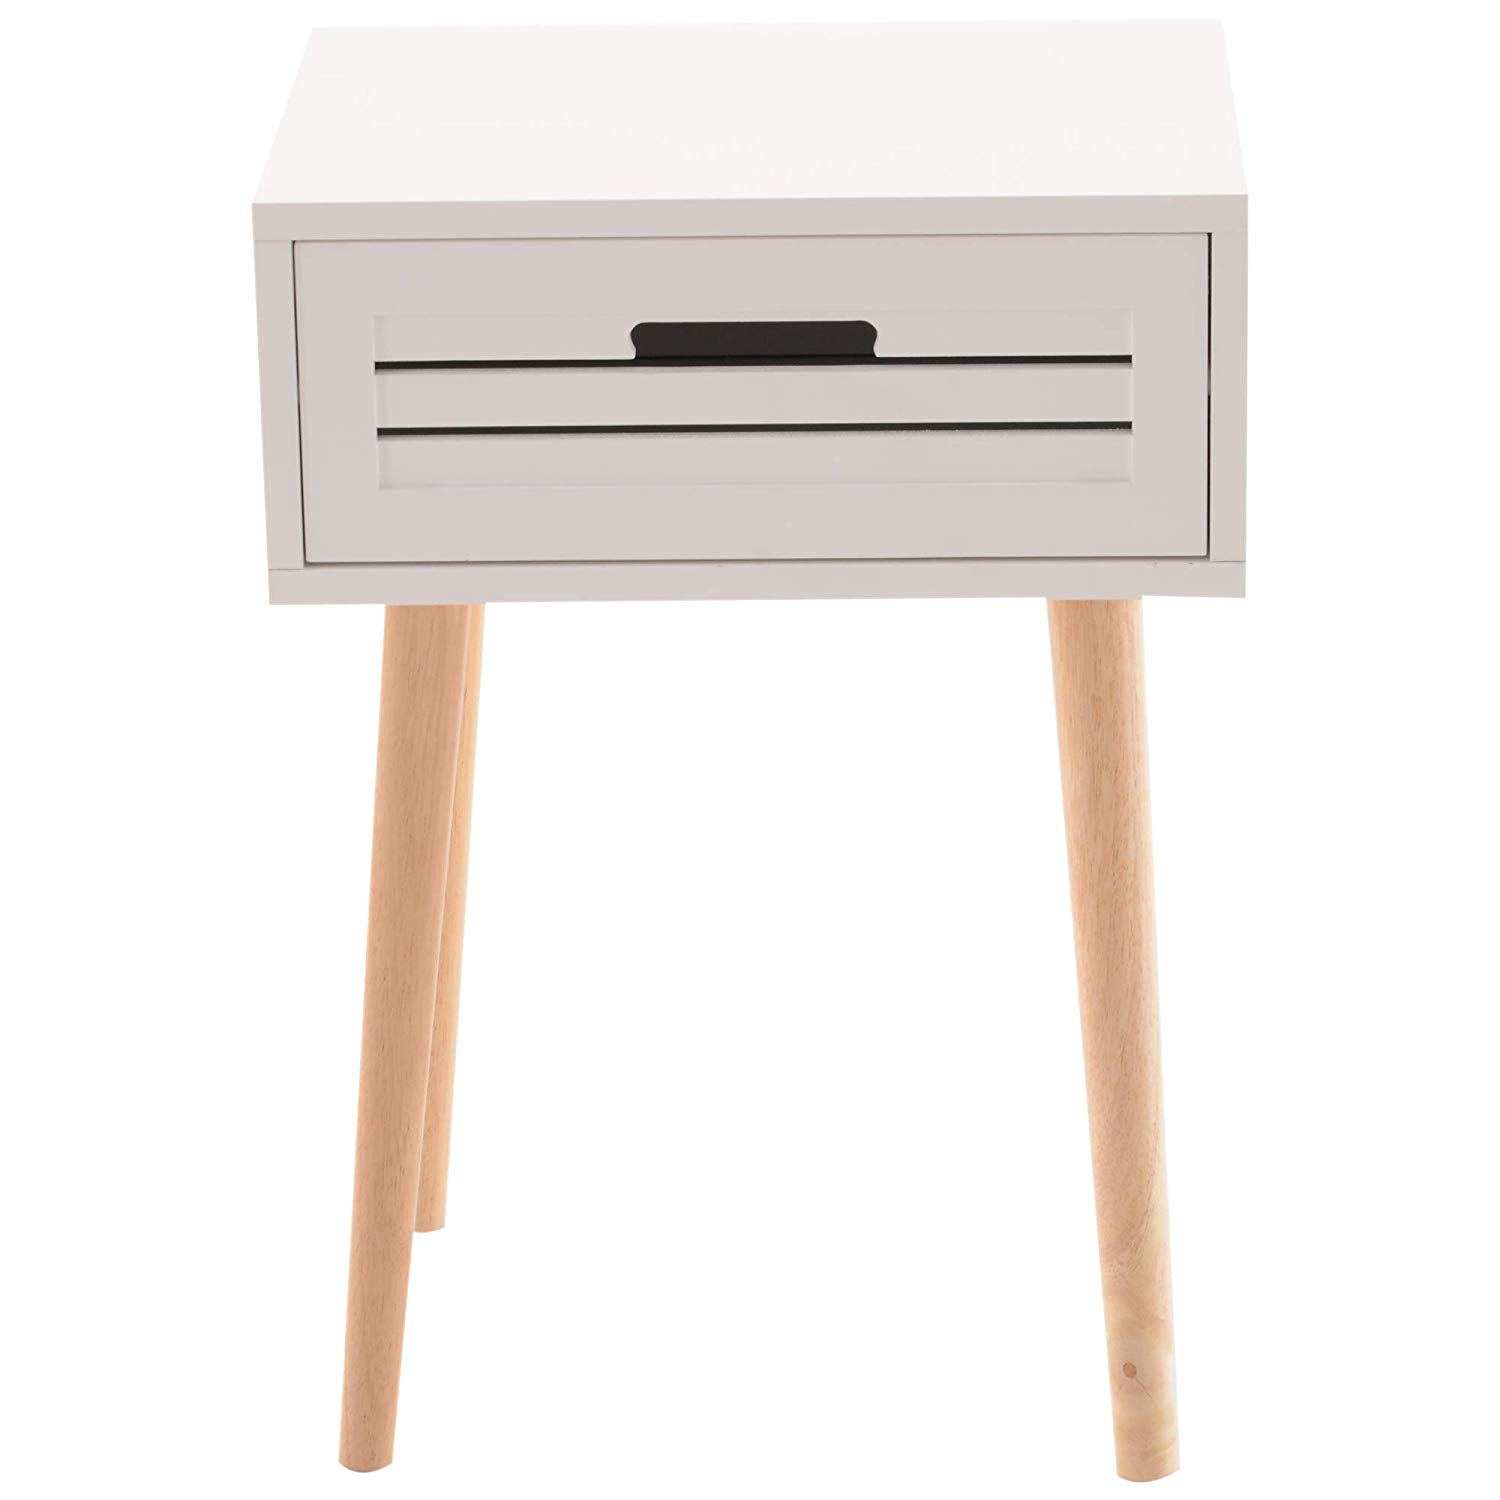 homcom wood mid century modern end table night stand accent with storage drawer white kitchen dining pottery barn display coffee cute chair cordless lamps for living room shadow